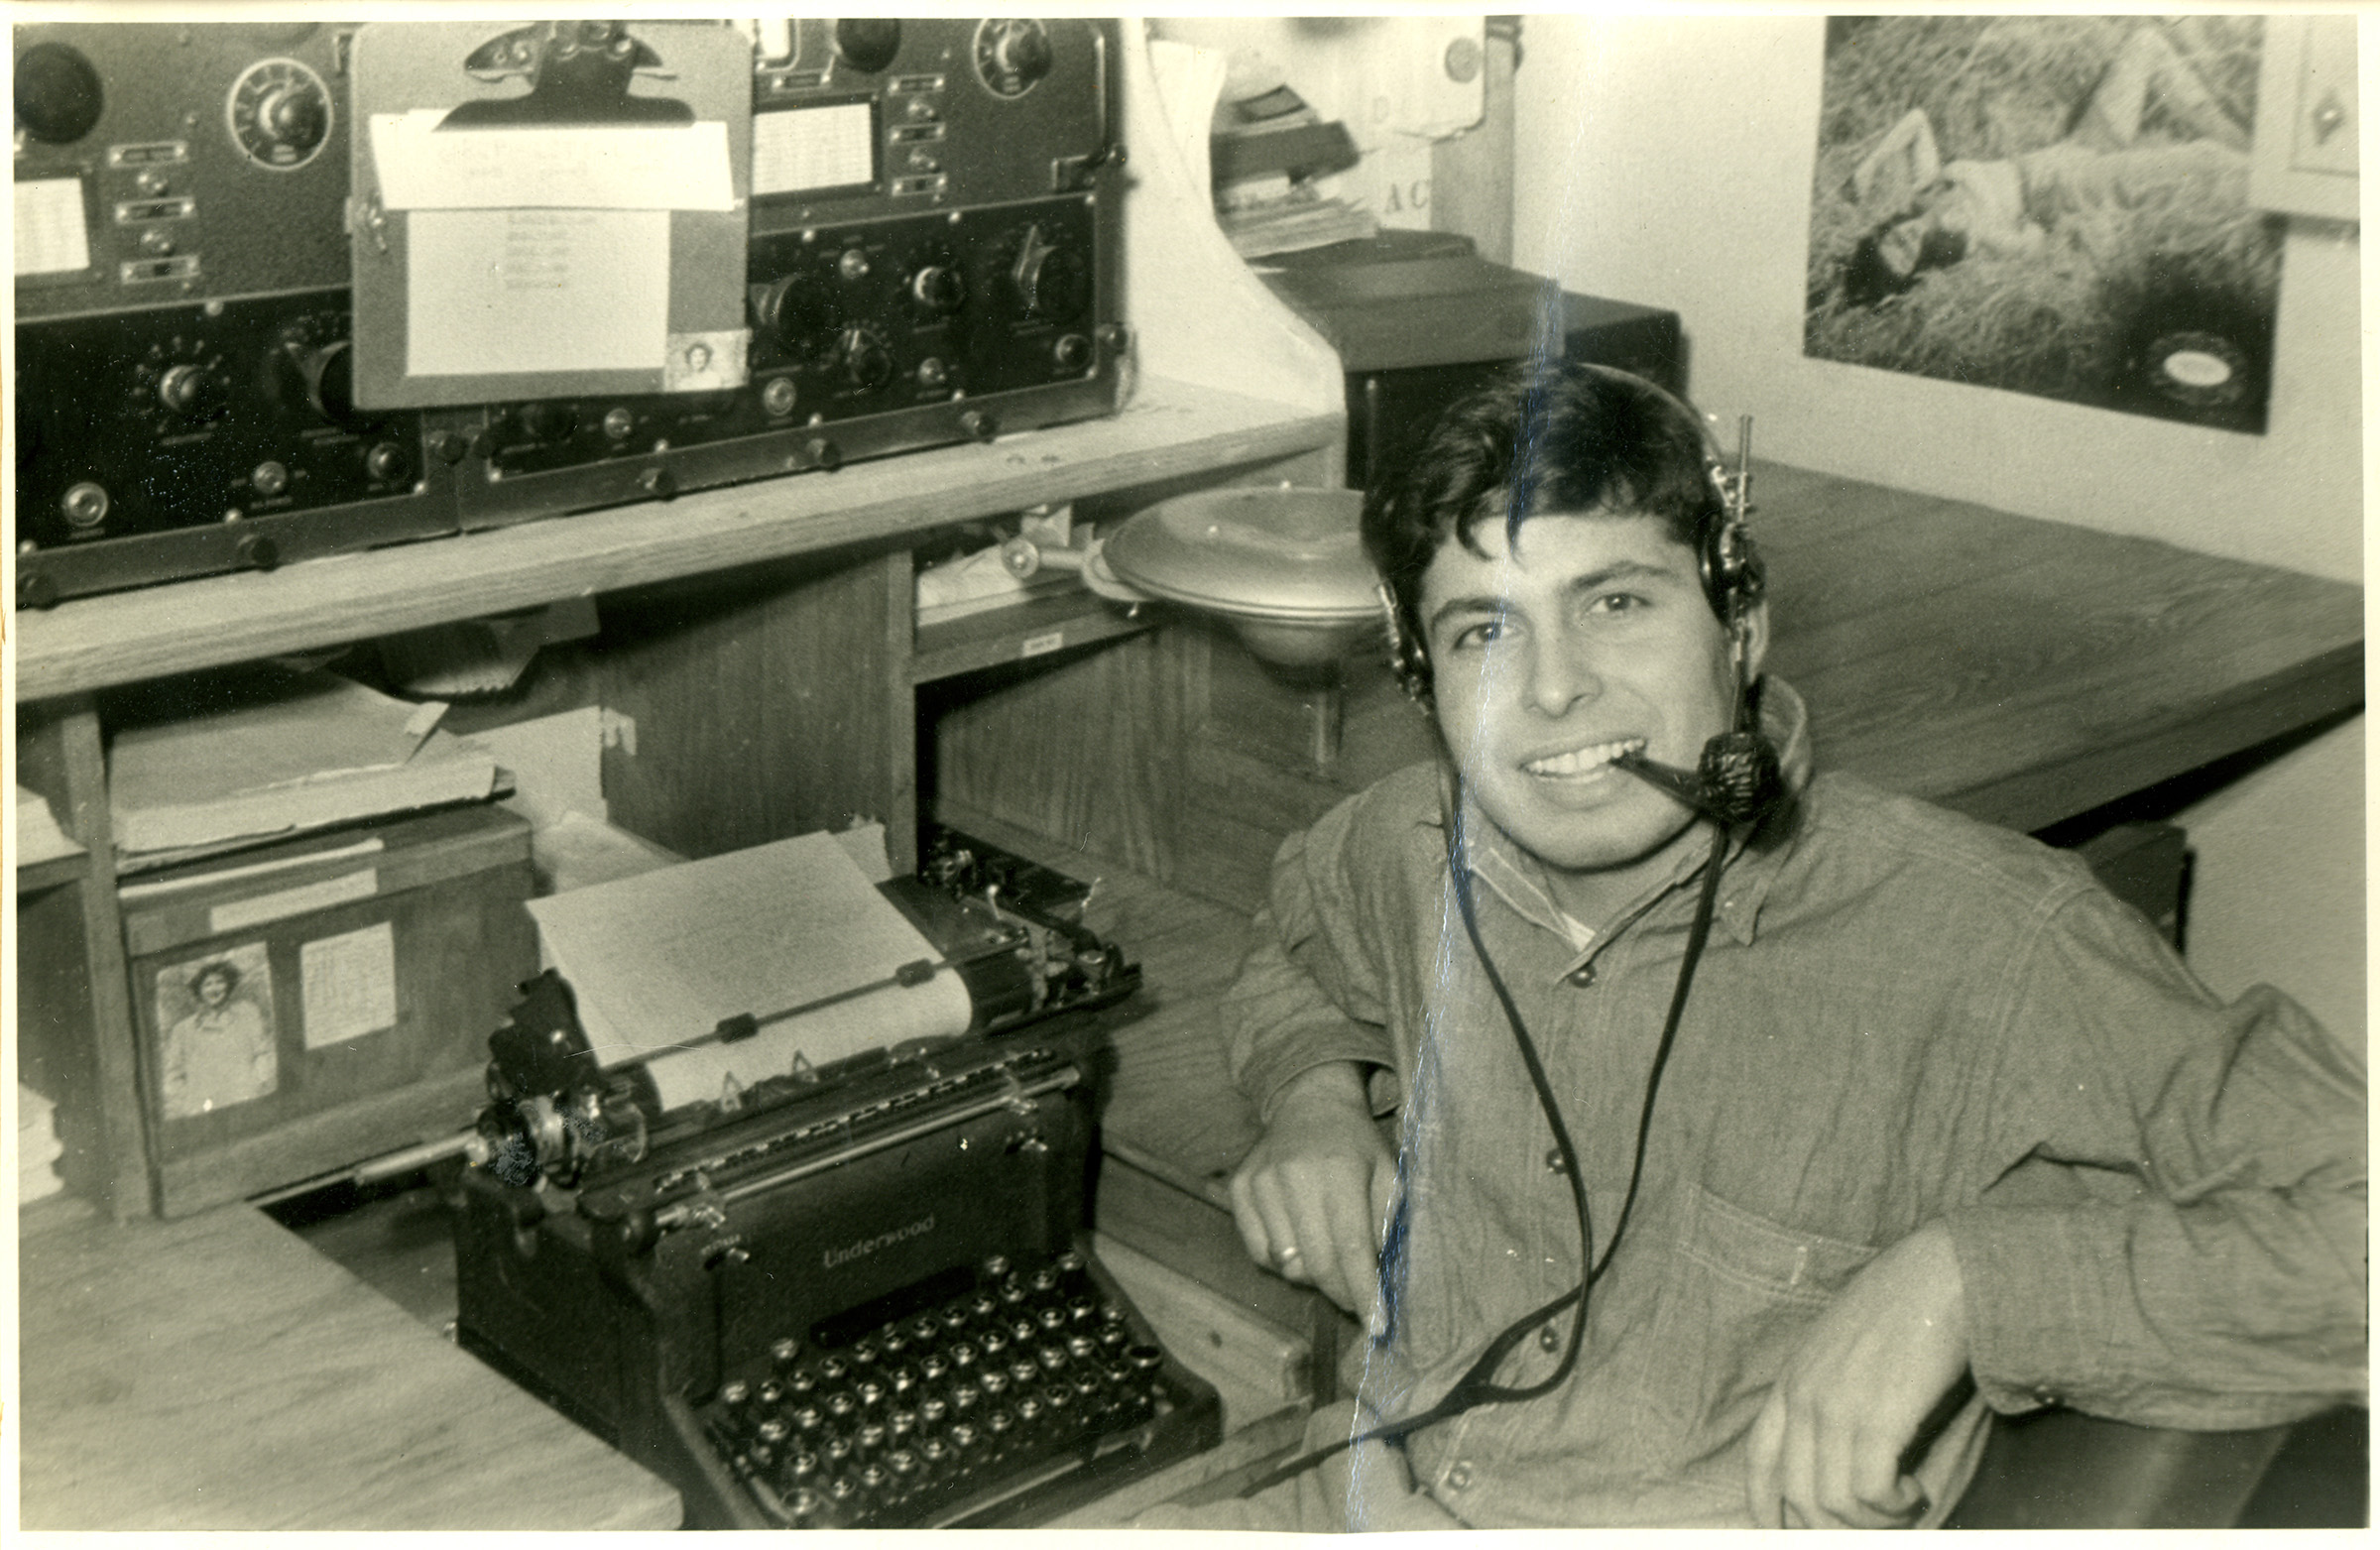 Radioman Peter Orlando sitting behind a typewriter on the recue-tug USS ATR-2. Orlando witnessed the landings at Omaha Beach from his tugboat.